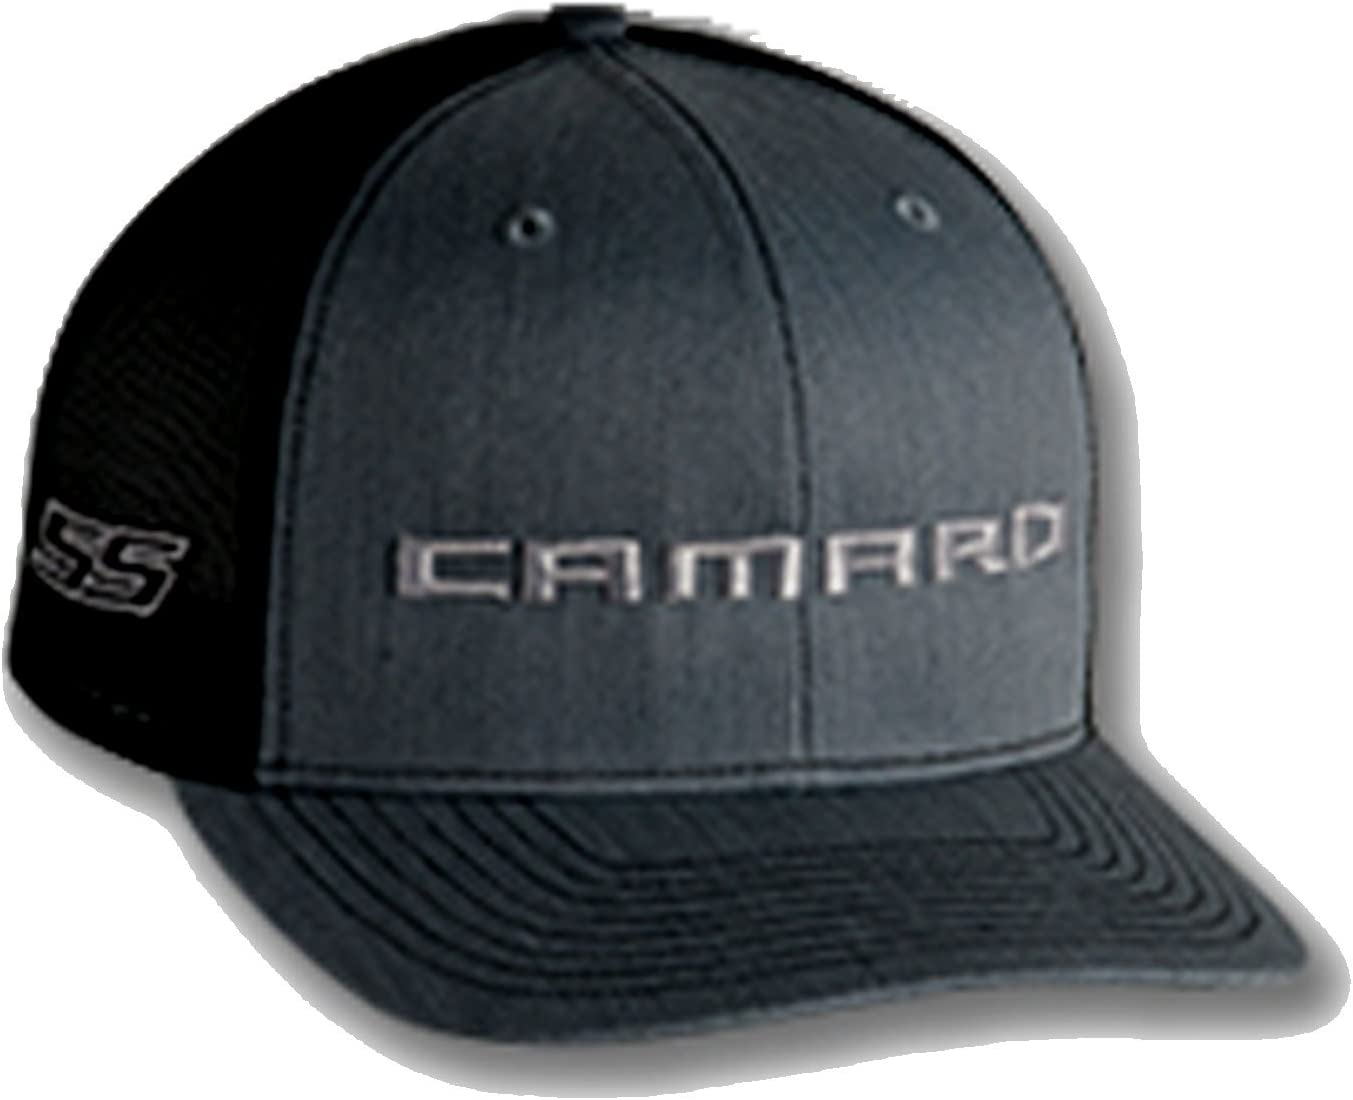 Chevy Camaro SS White Mesh Hat